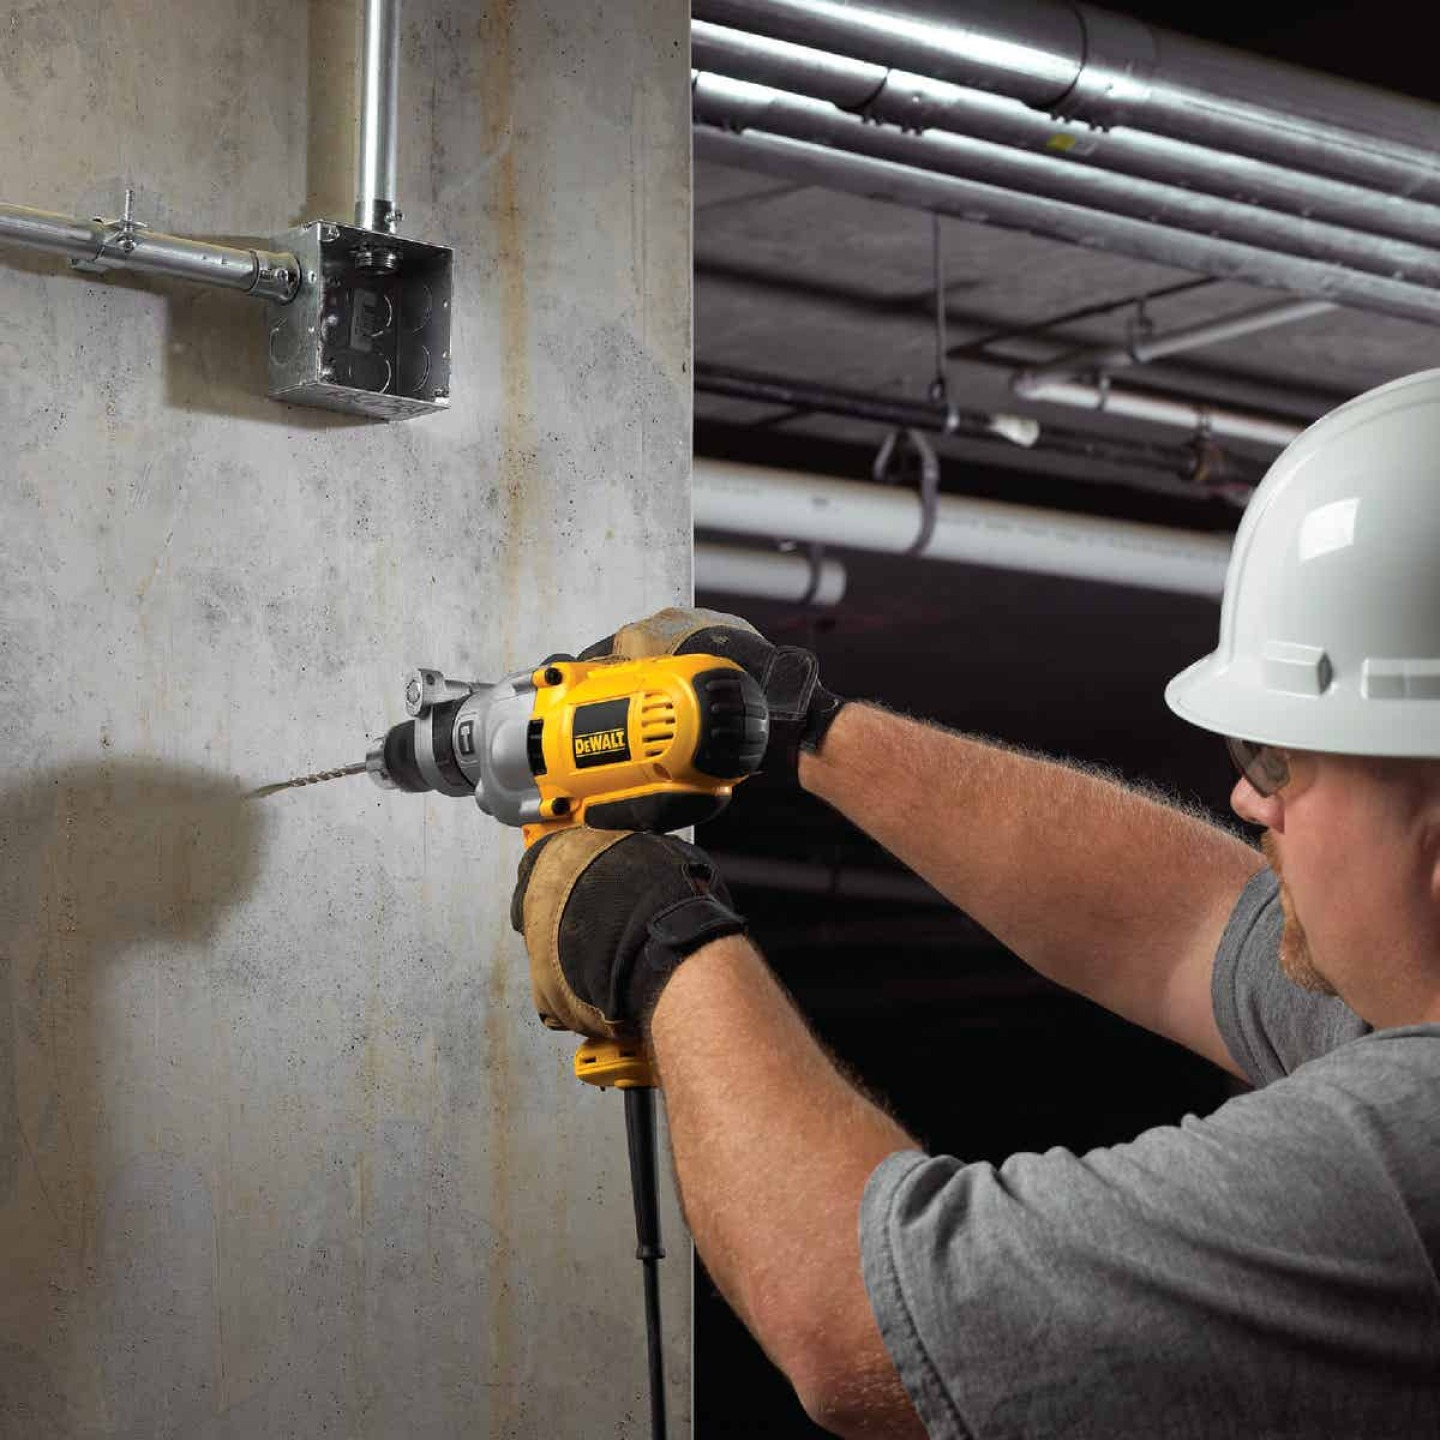 DeWalt 1/2 In. Keyed 10.0-Amp VSR Mid-Handle Grip Electric Hammer Drill Image 2